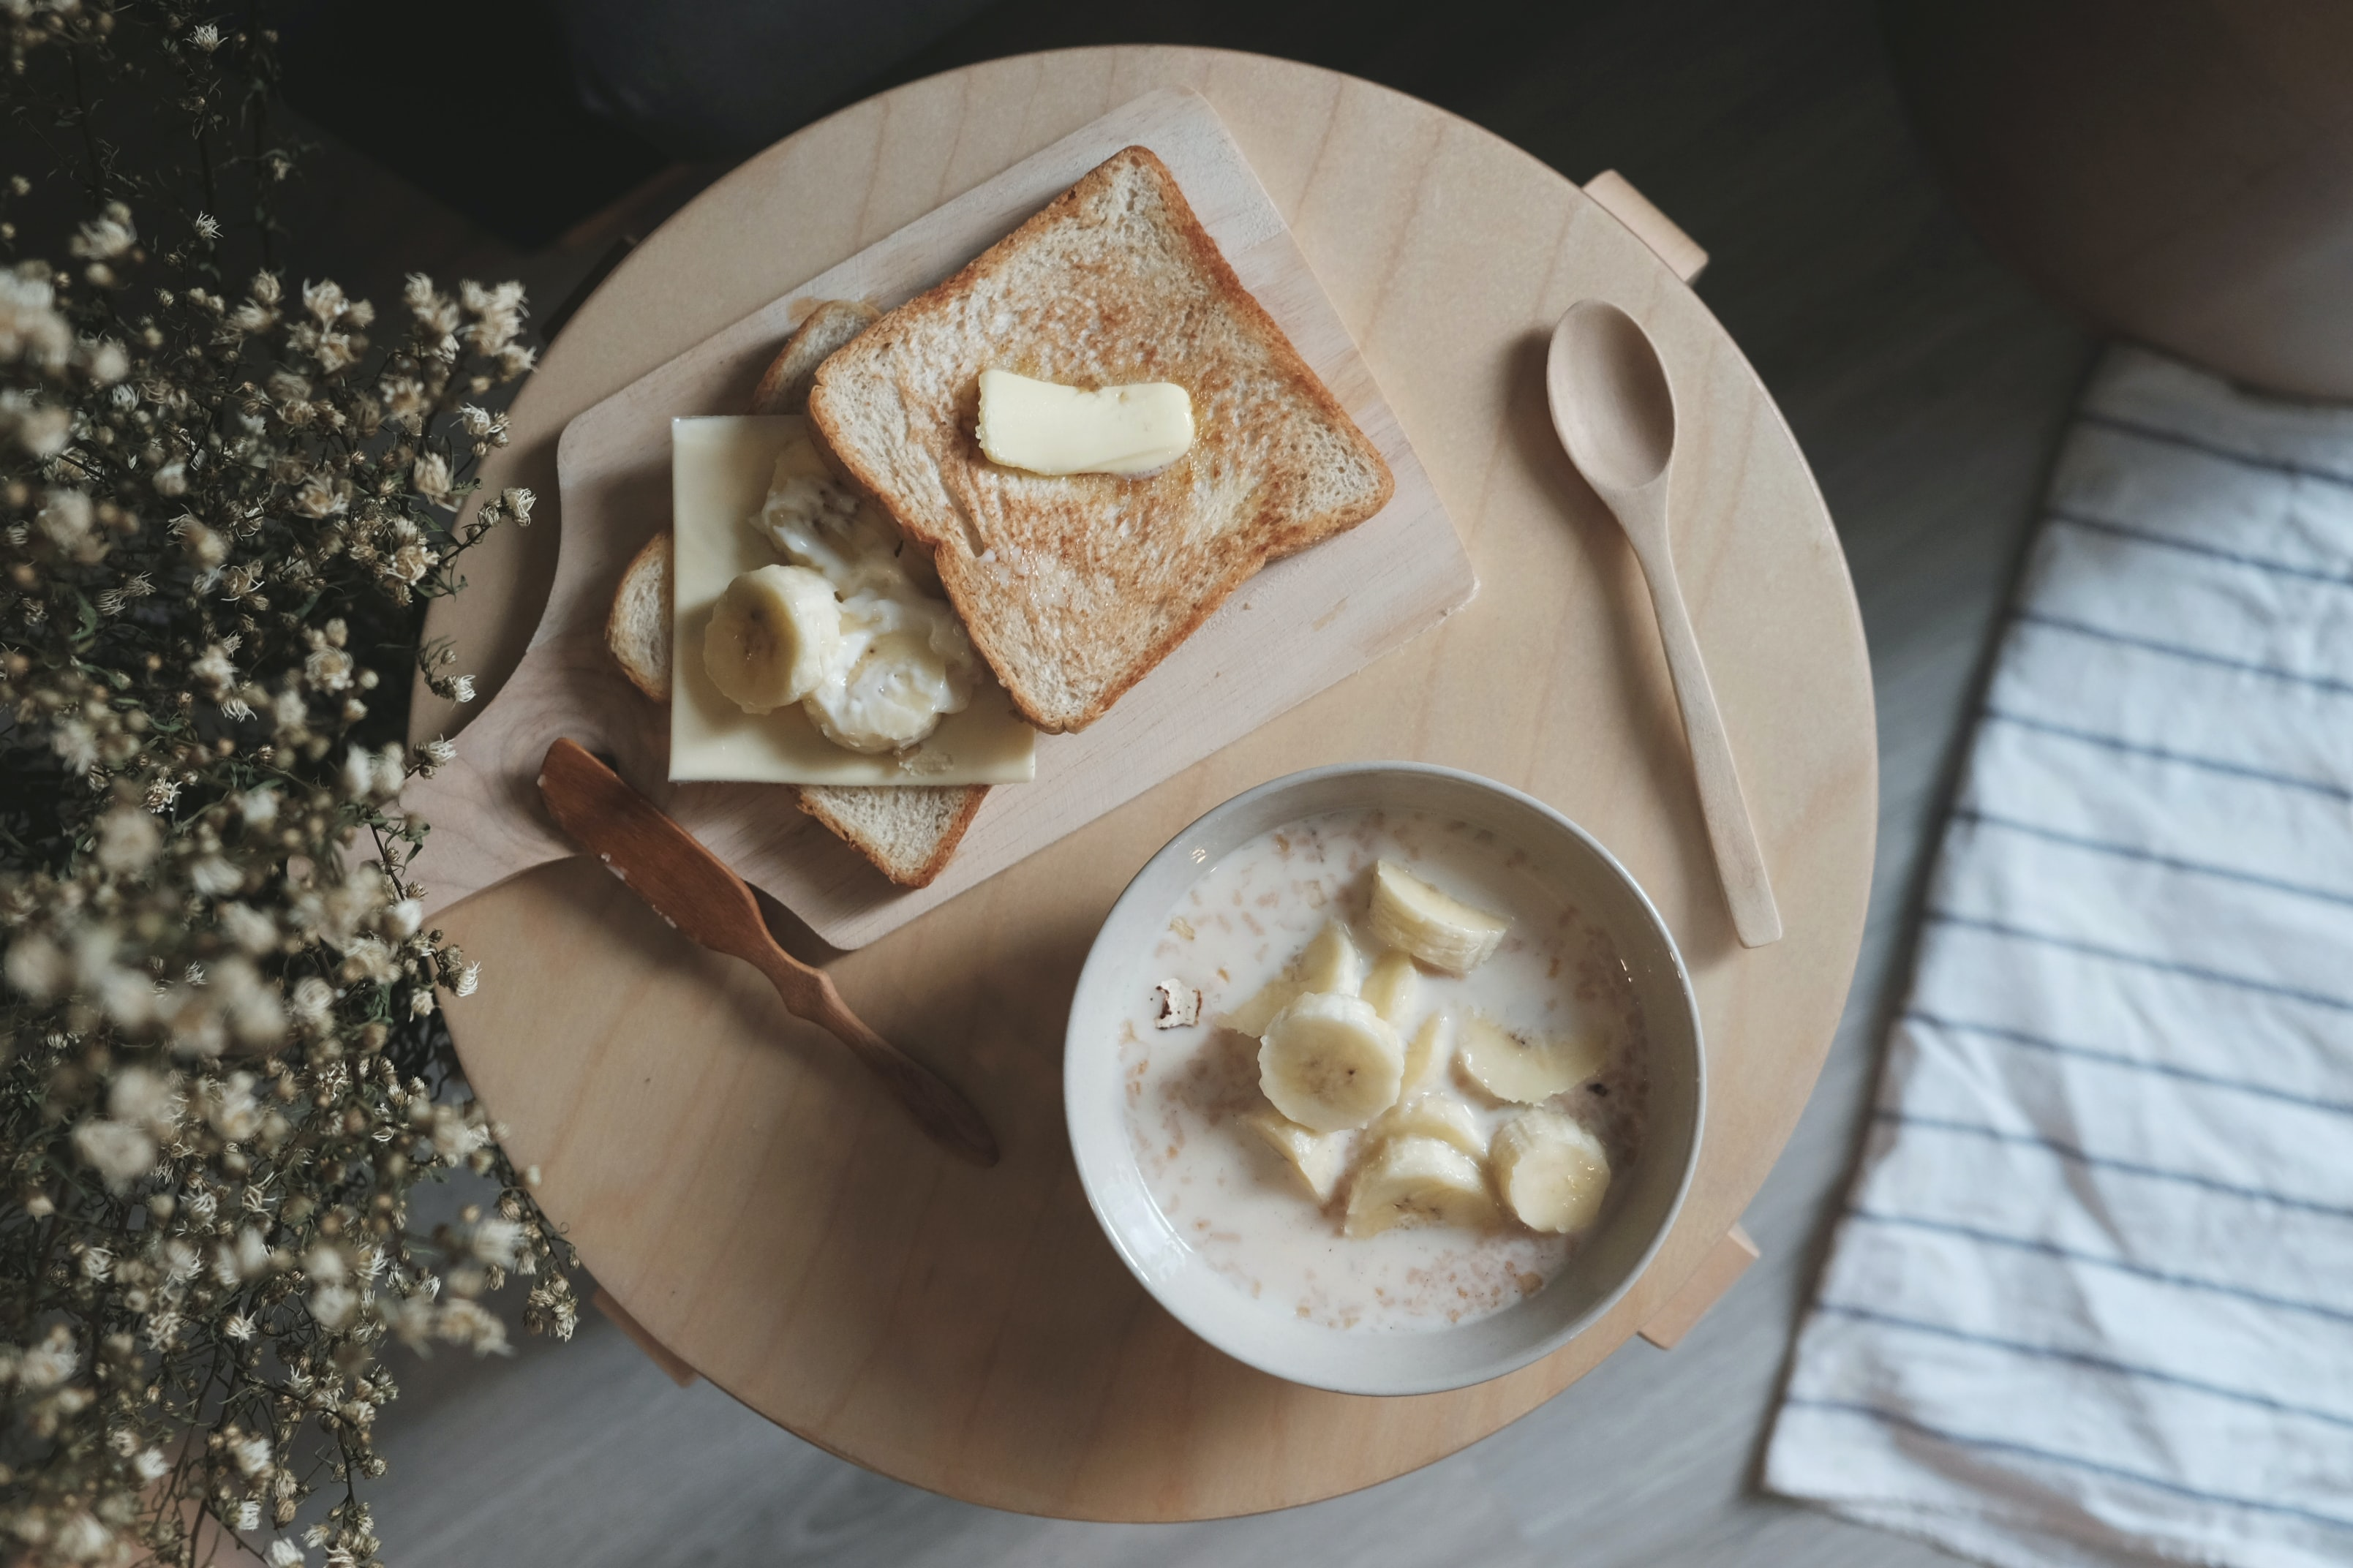 oatmeal with banana and bread with butter on top